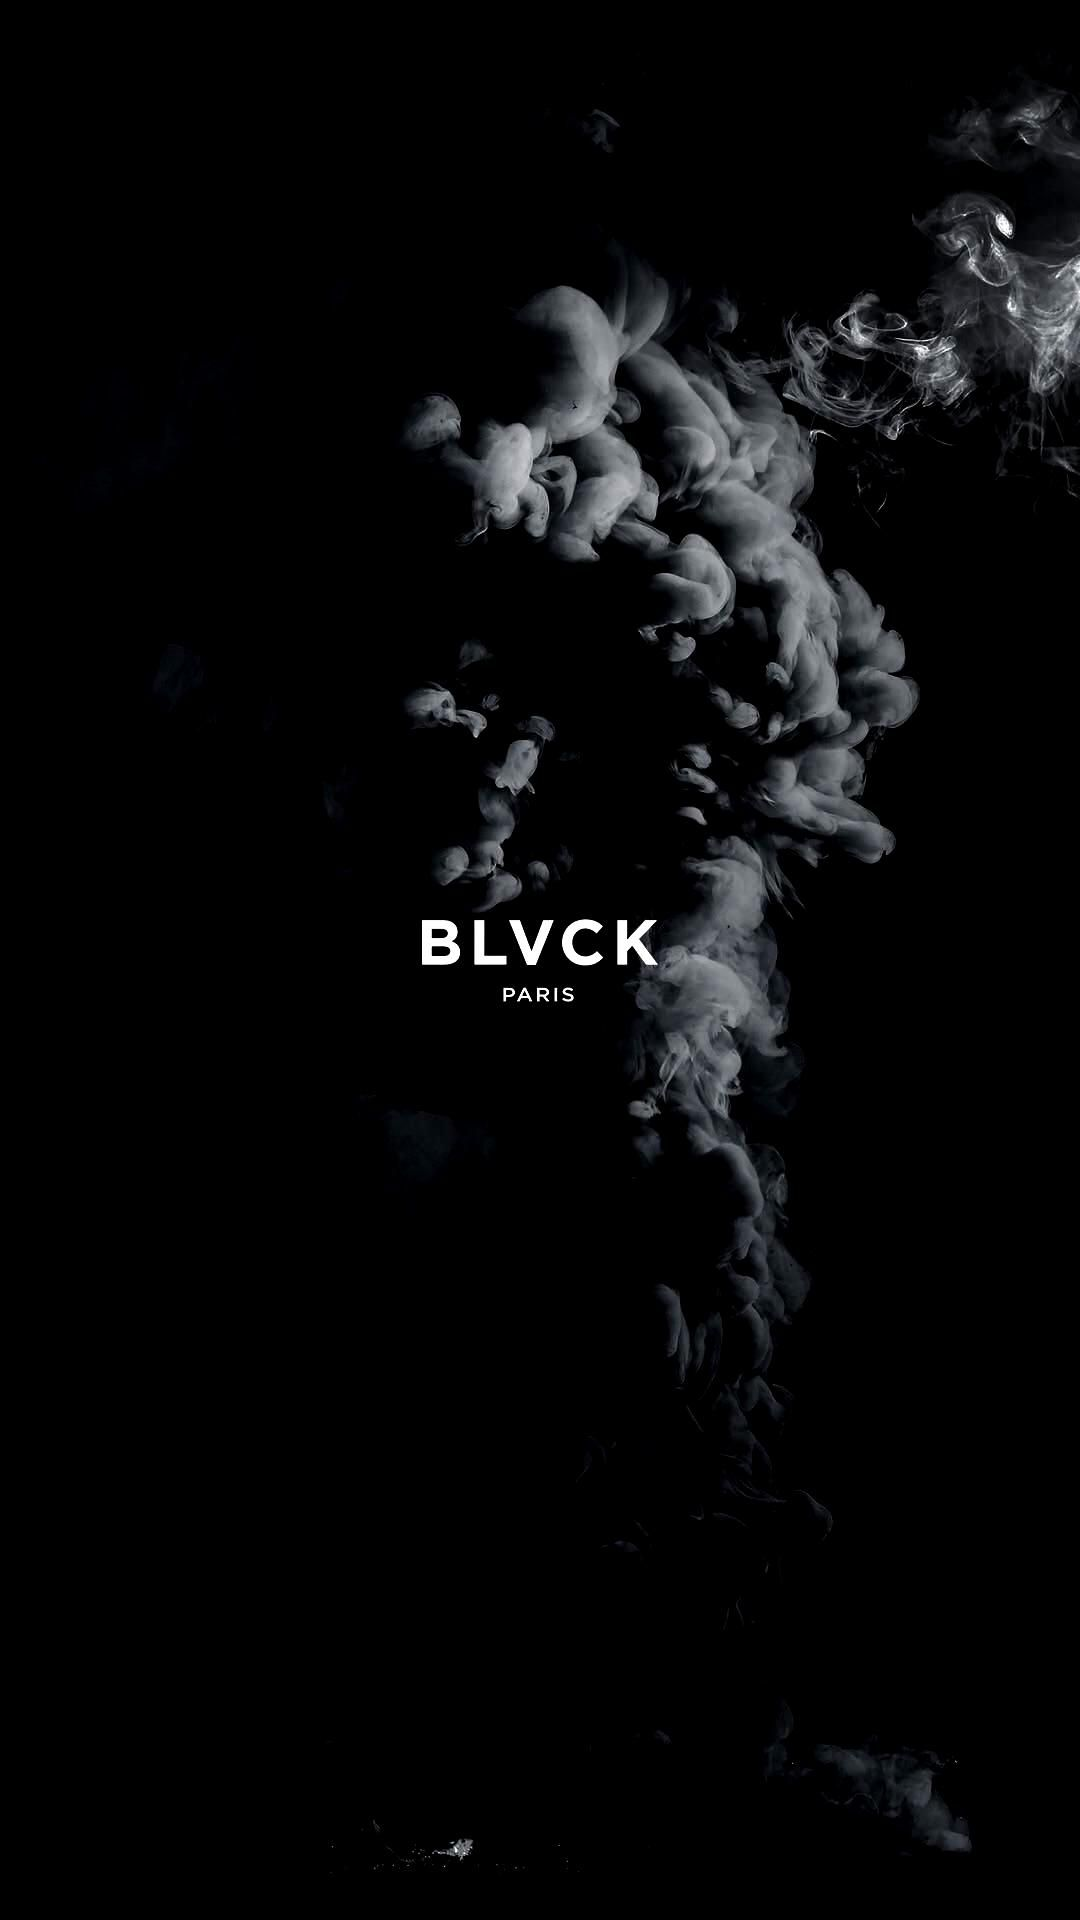 Black Wallpaper Iphone Blackwallpaperiphone Black Wallpaper Iphone In 2020 Black Wallpaper Black Wallpaper Iphone Dark Wallpaper